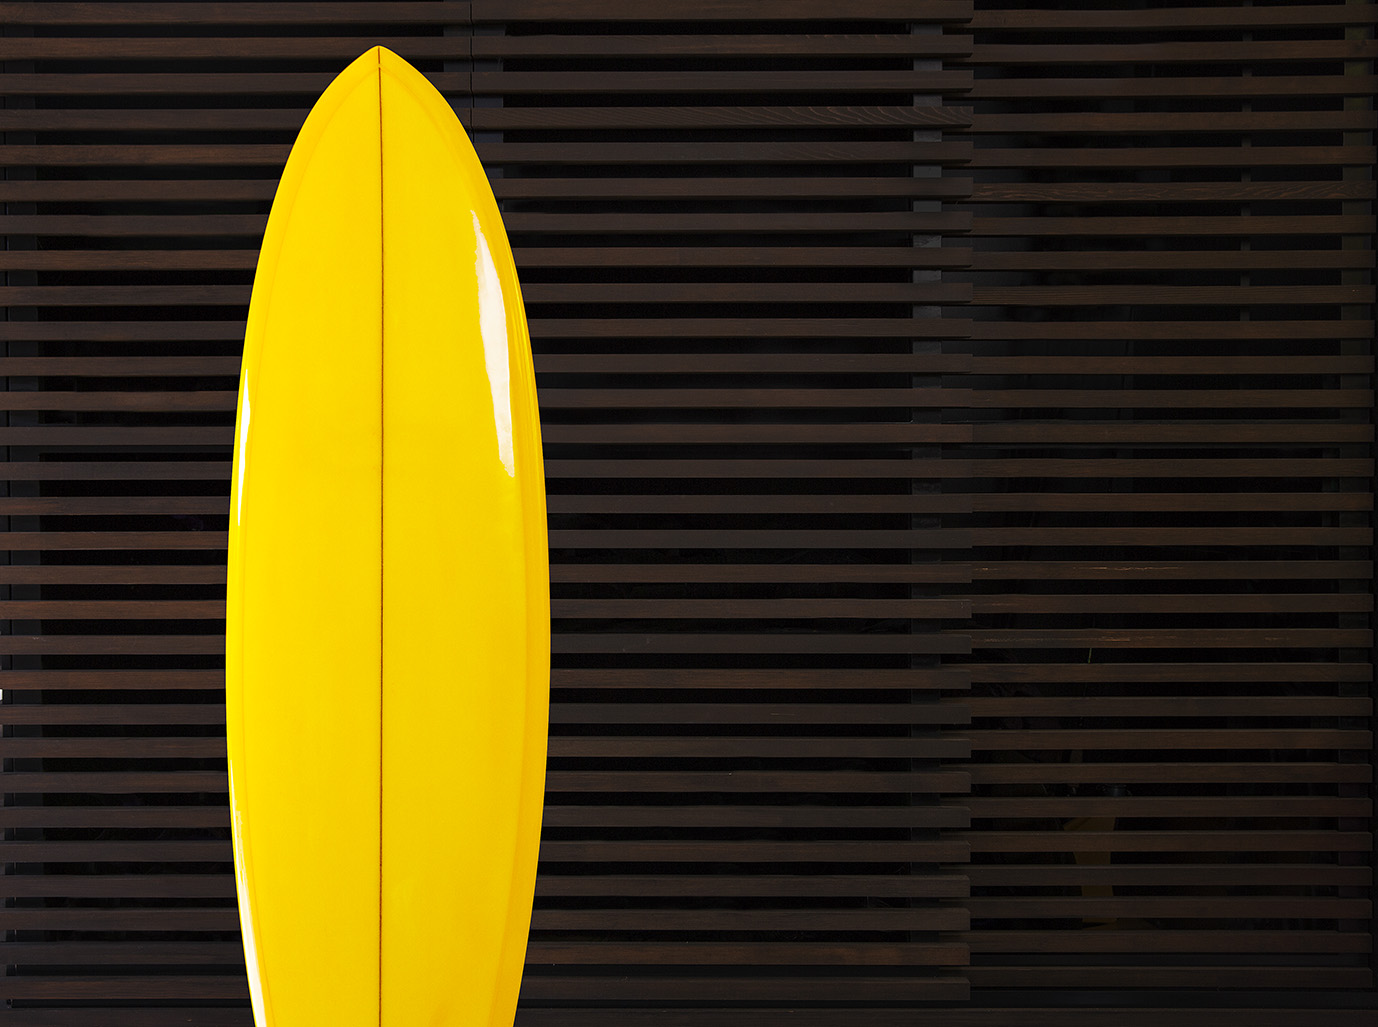 Surfboard image - Ray White_Know How - Landscape - Low res